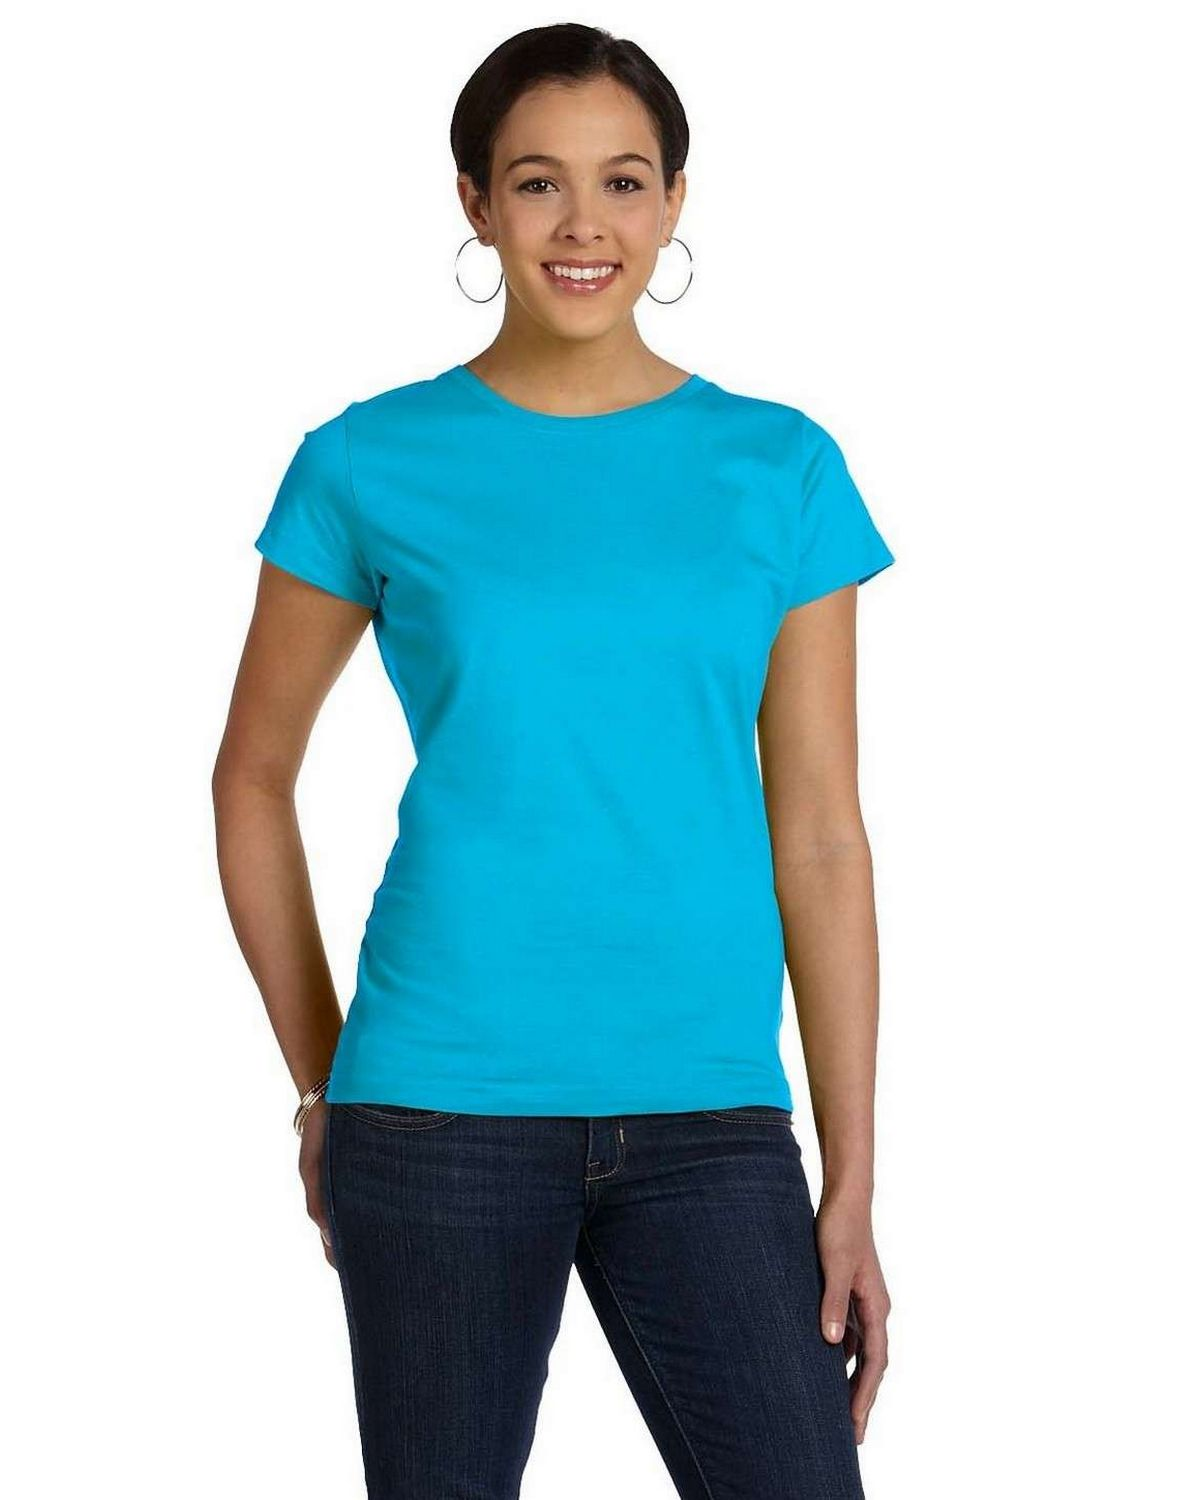 Lat 3516 Fine Jersey Longer Length T-Shirt - Aqua - XL 3516